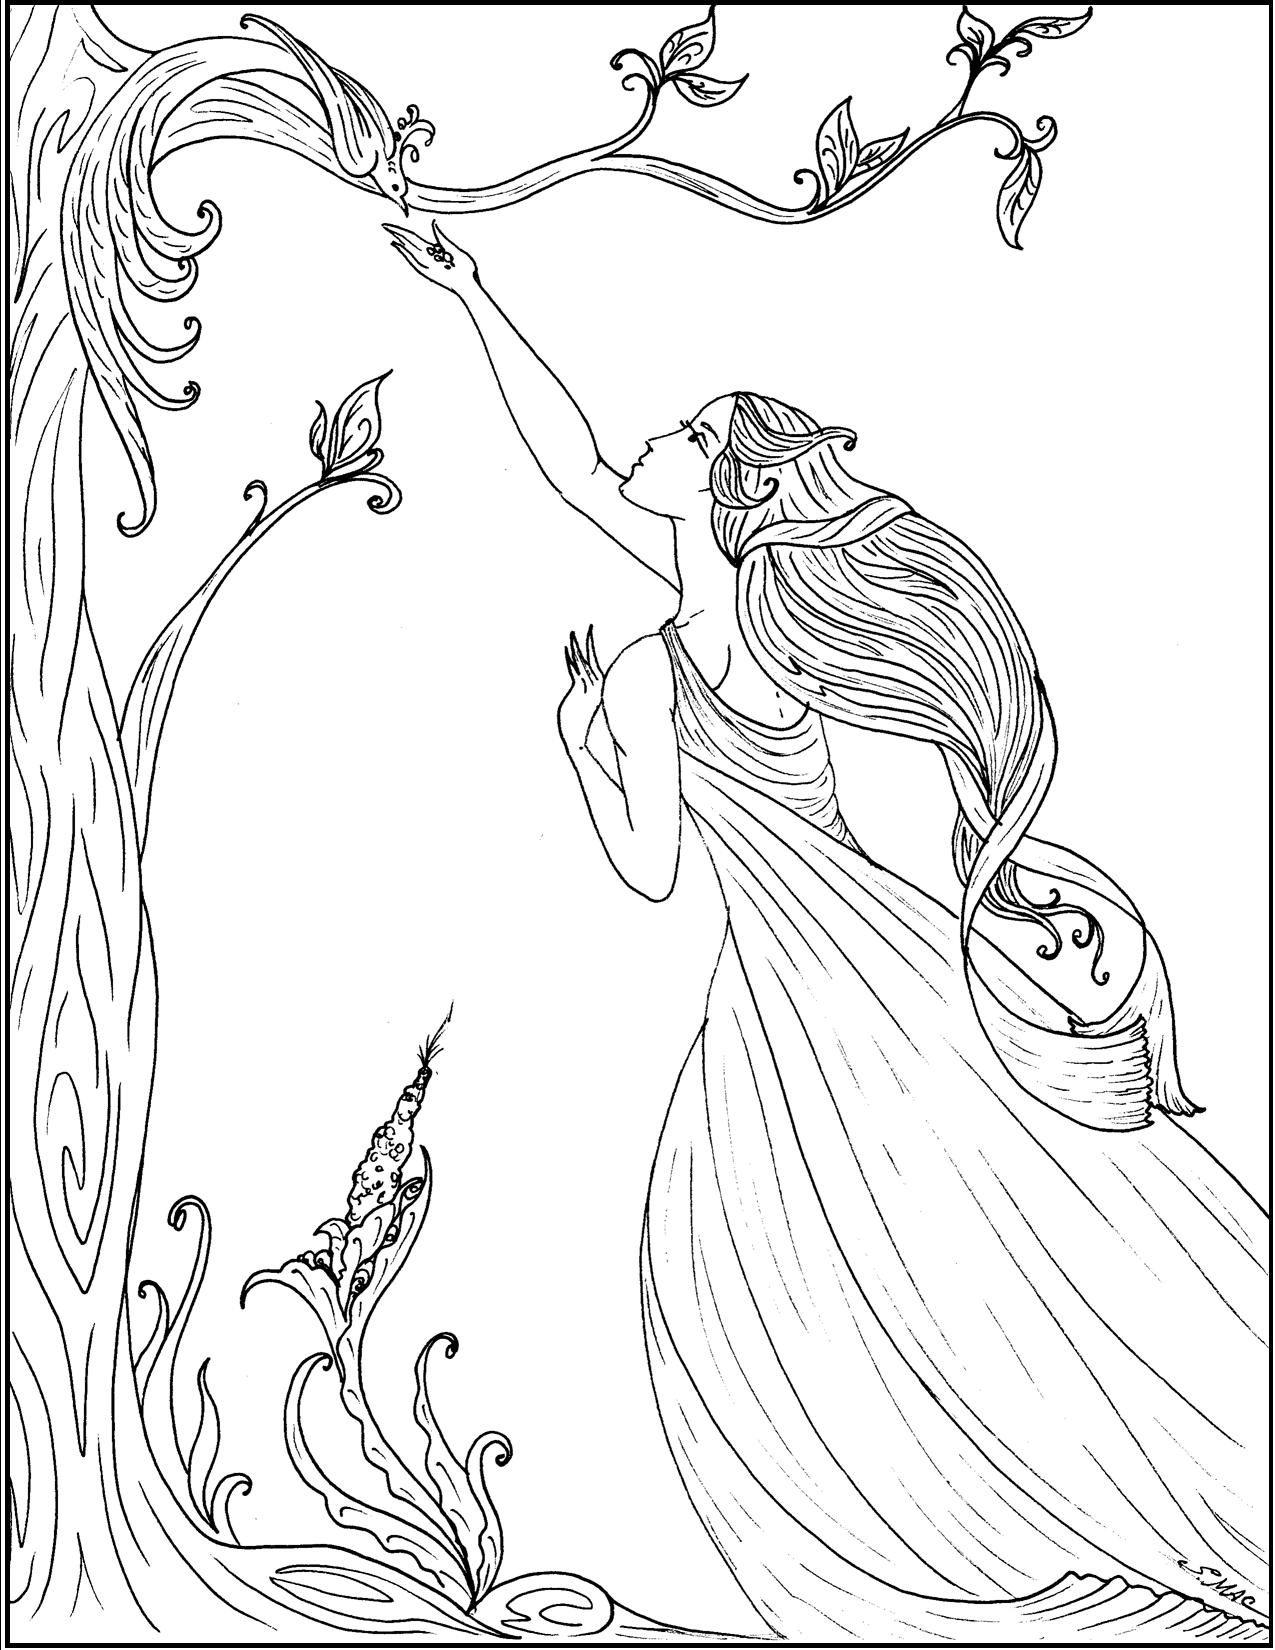 art pictures to color art nouveau coloring pages smac39s place to be art pictures to color